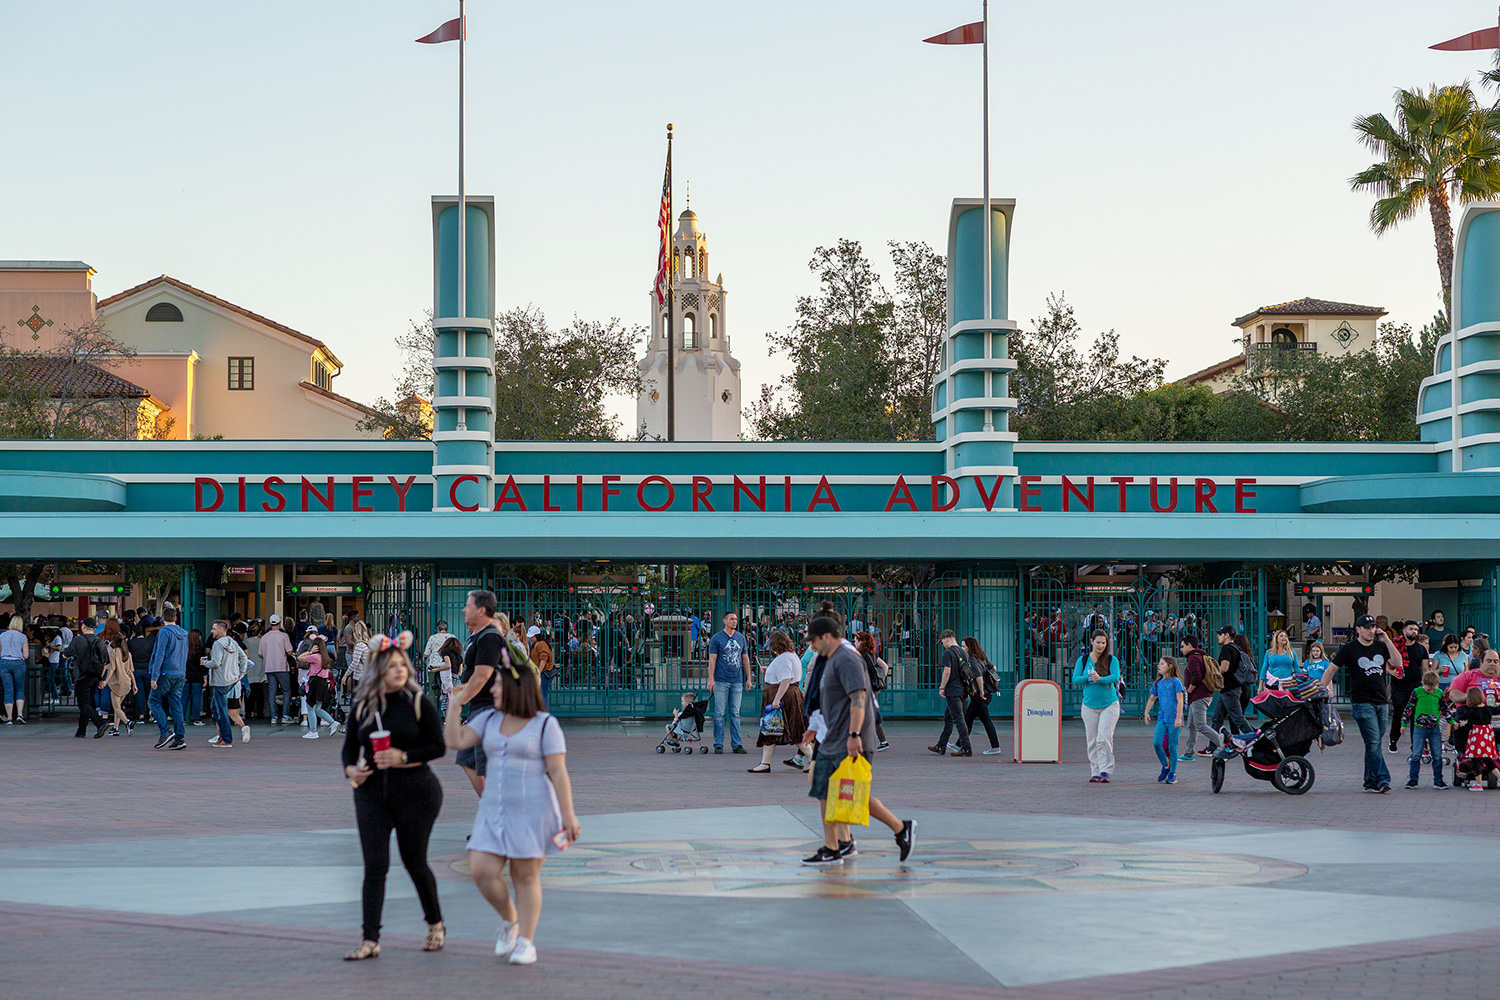 Visitors attend Disney California Adventure theme park on February 25, 2020 in Anaheim, California